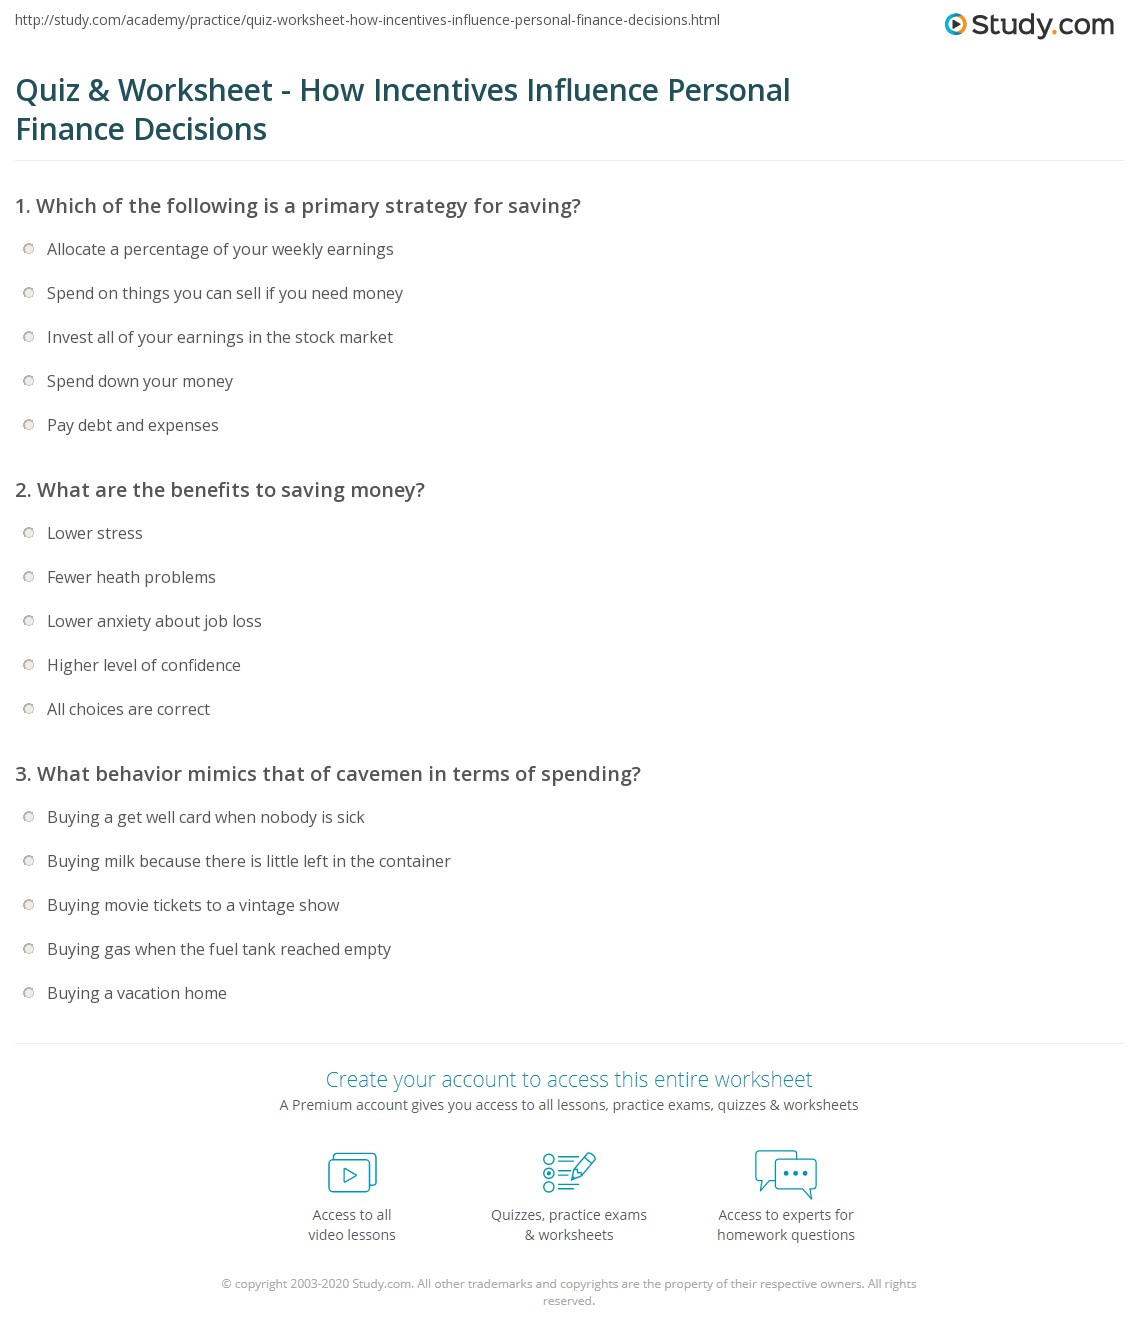 Quiz & Worksheet - How Incentives Influence Personal Finance ...